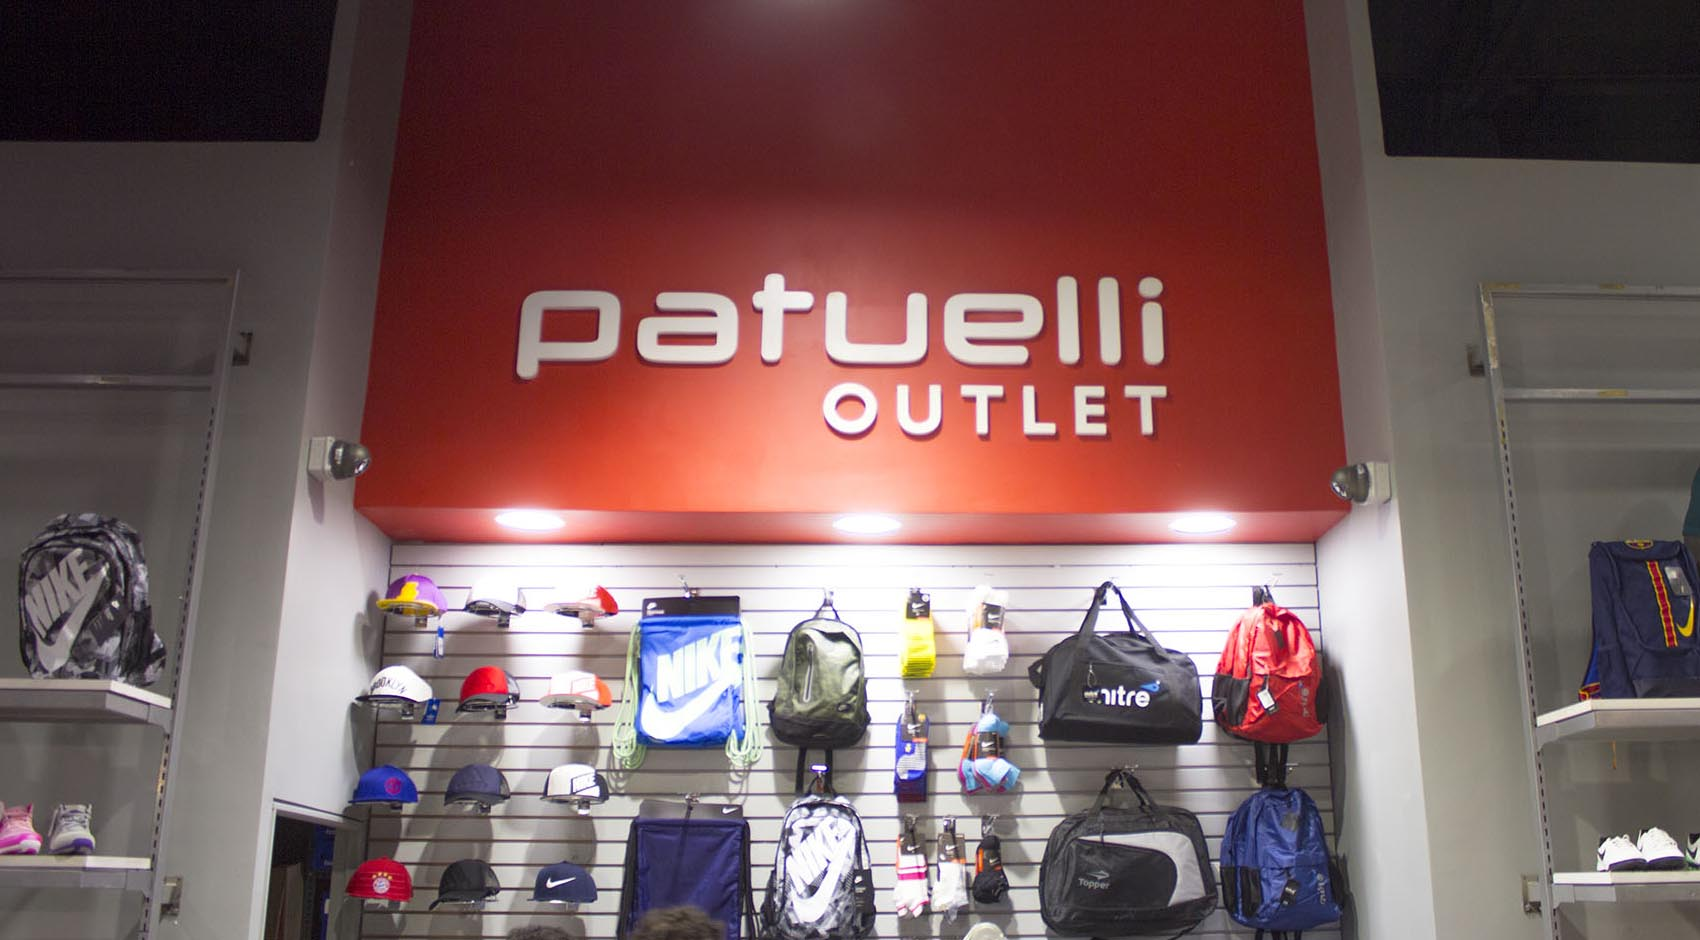 Outlet Patuelli Mall Easton